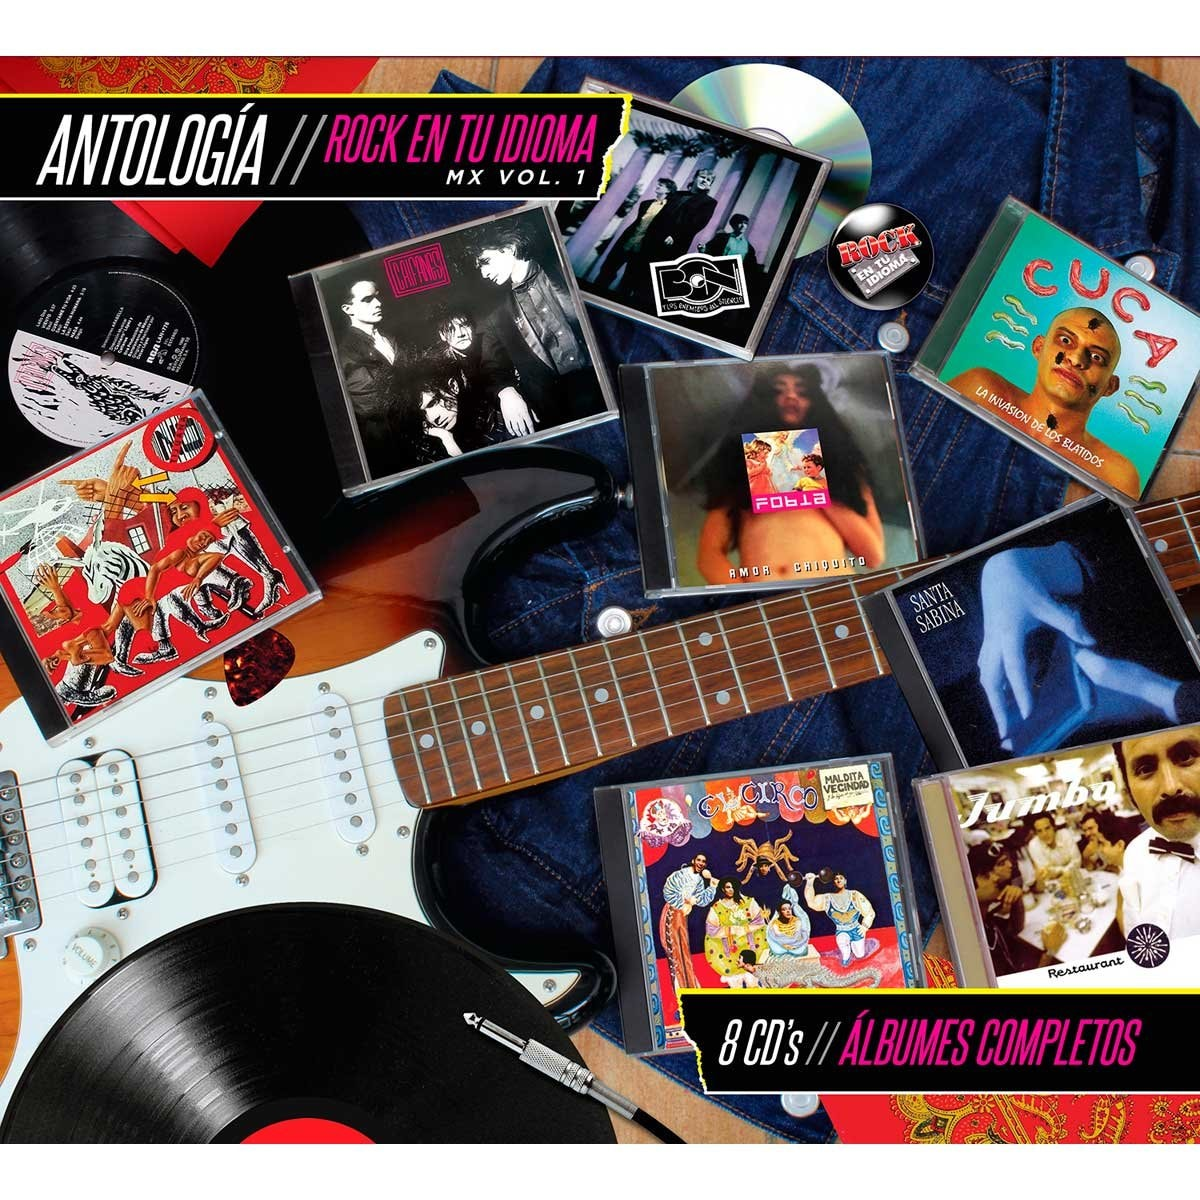 8 Cds Rock en Tu Idioma Vol. 1 Antologia